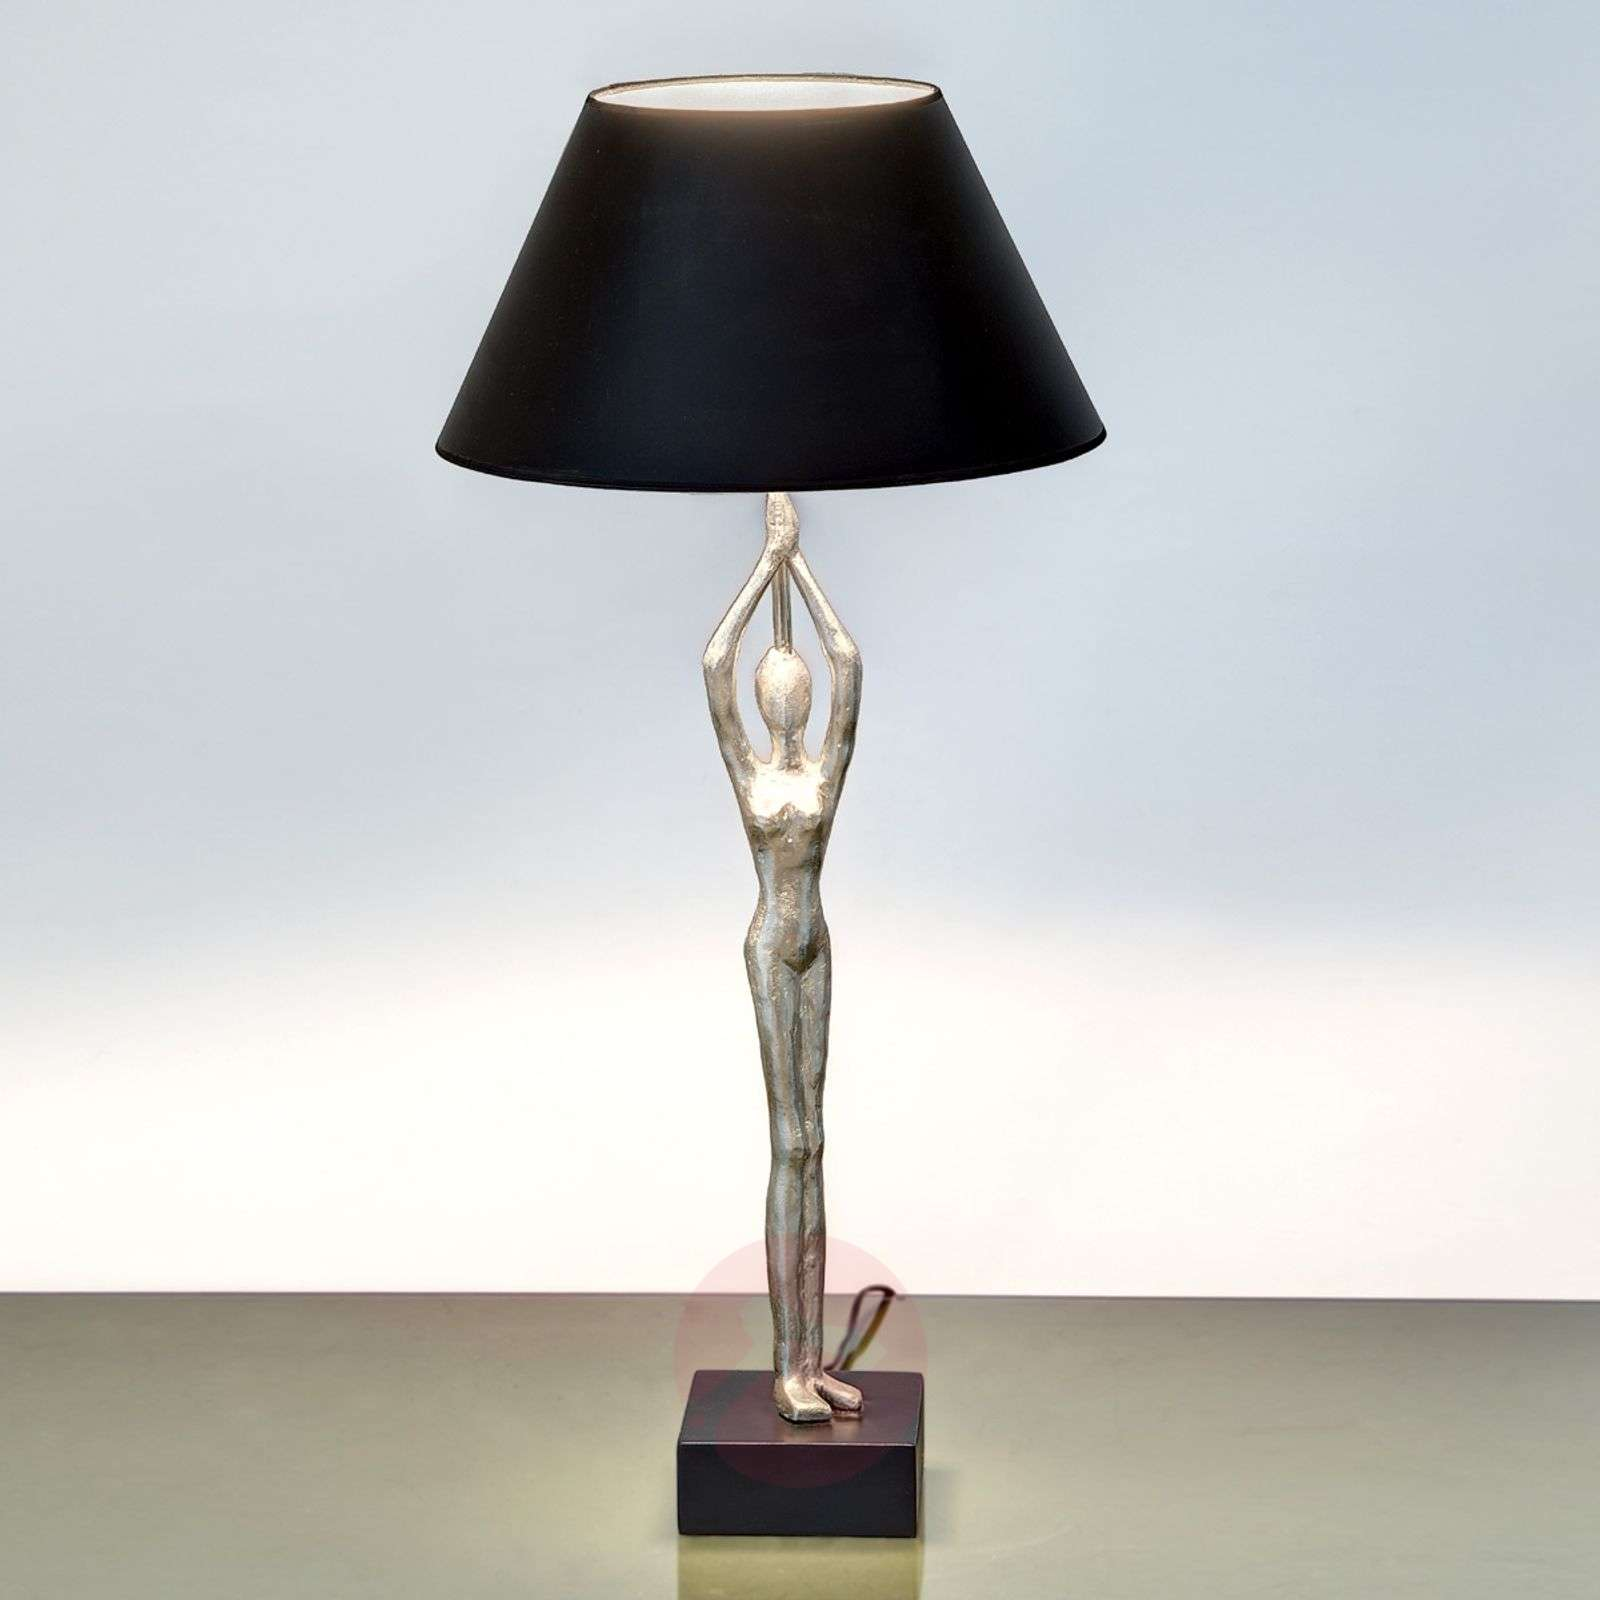 Designer table lamp Ballerino with figure-4512481-01